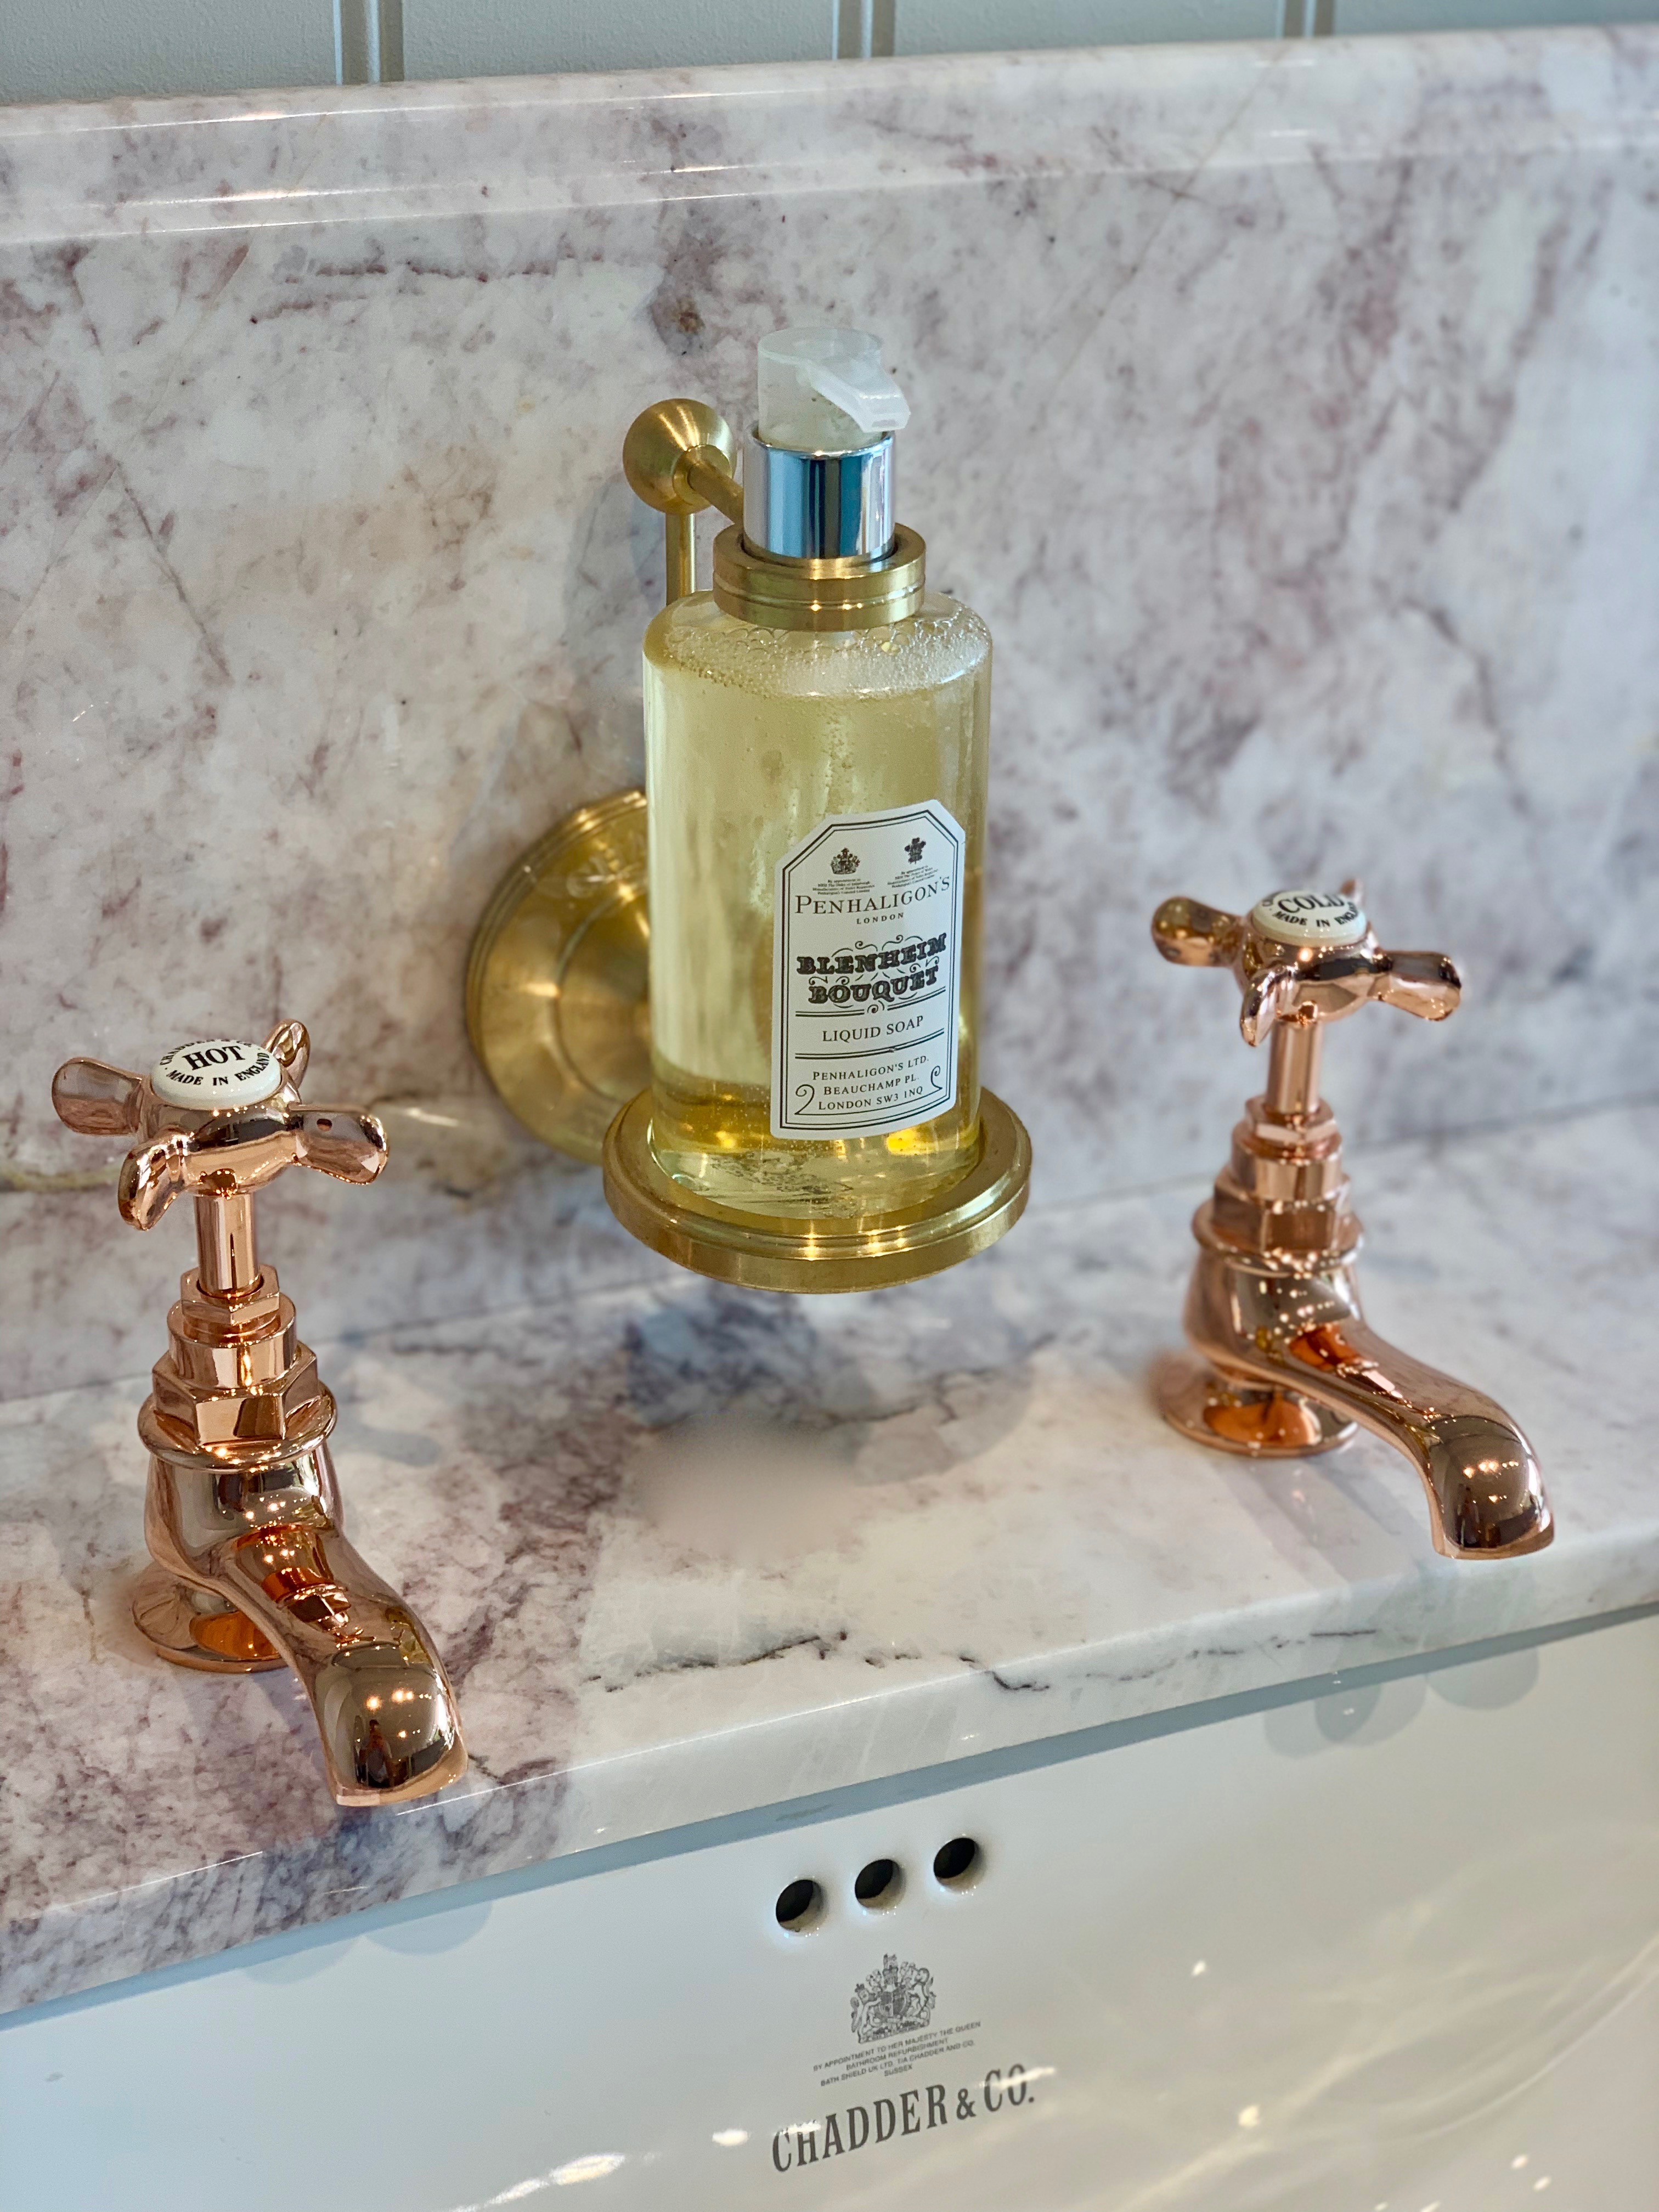 lockable soap bottle holder bathroom accessory